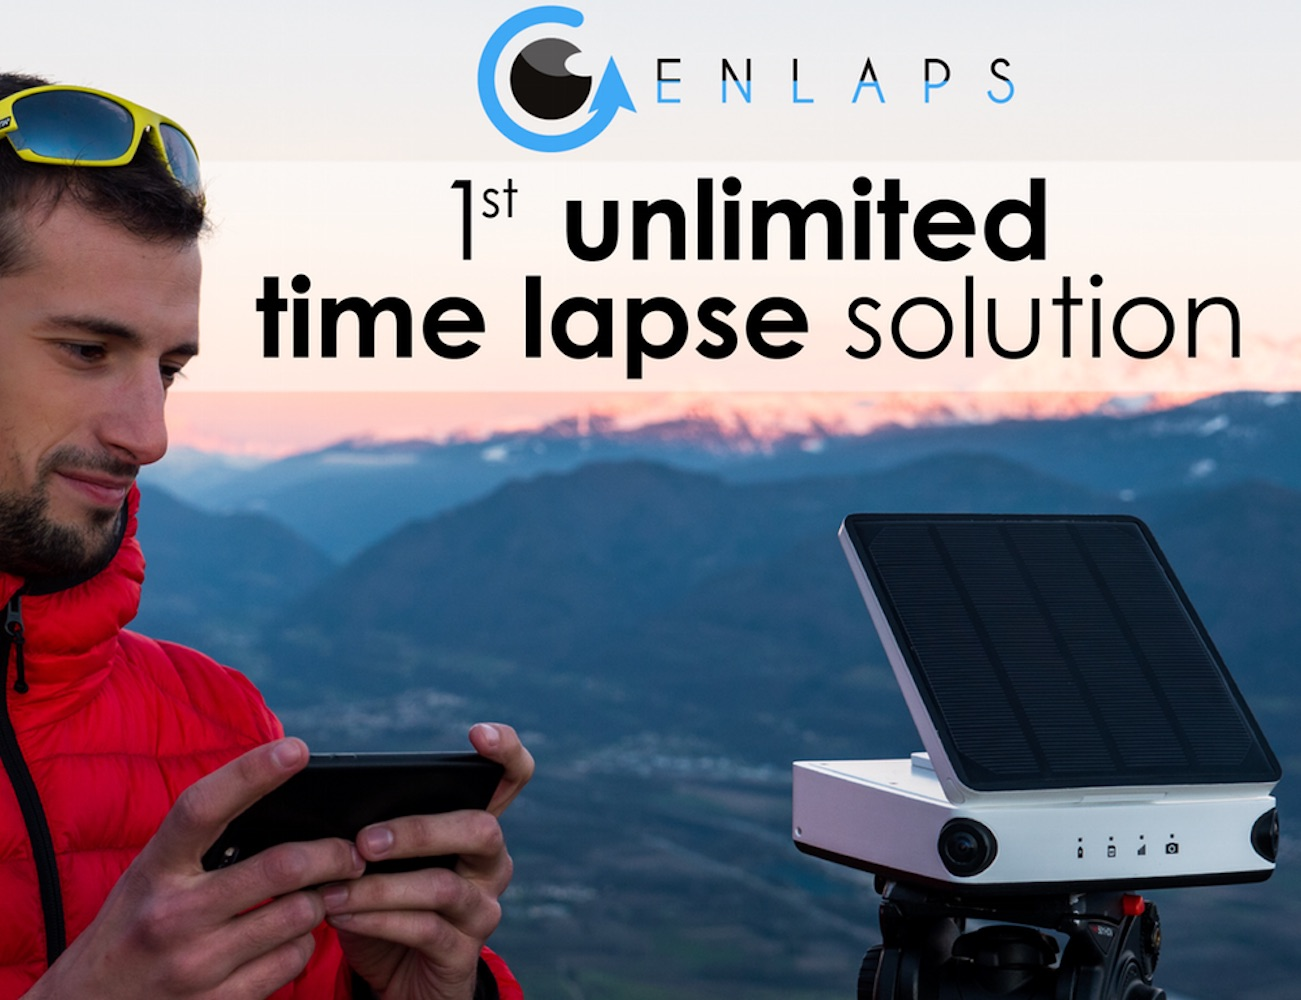 Enlaps Tikee – The World's First Unlimited Time-Lapse Photography Solution